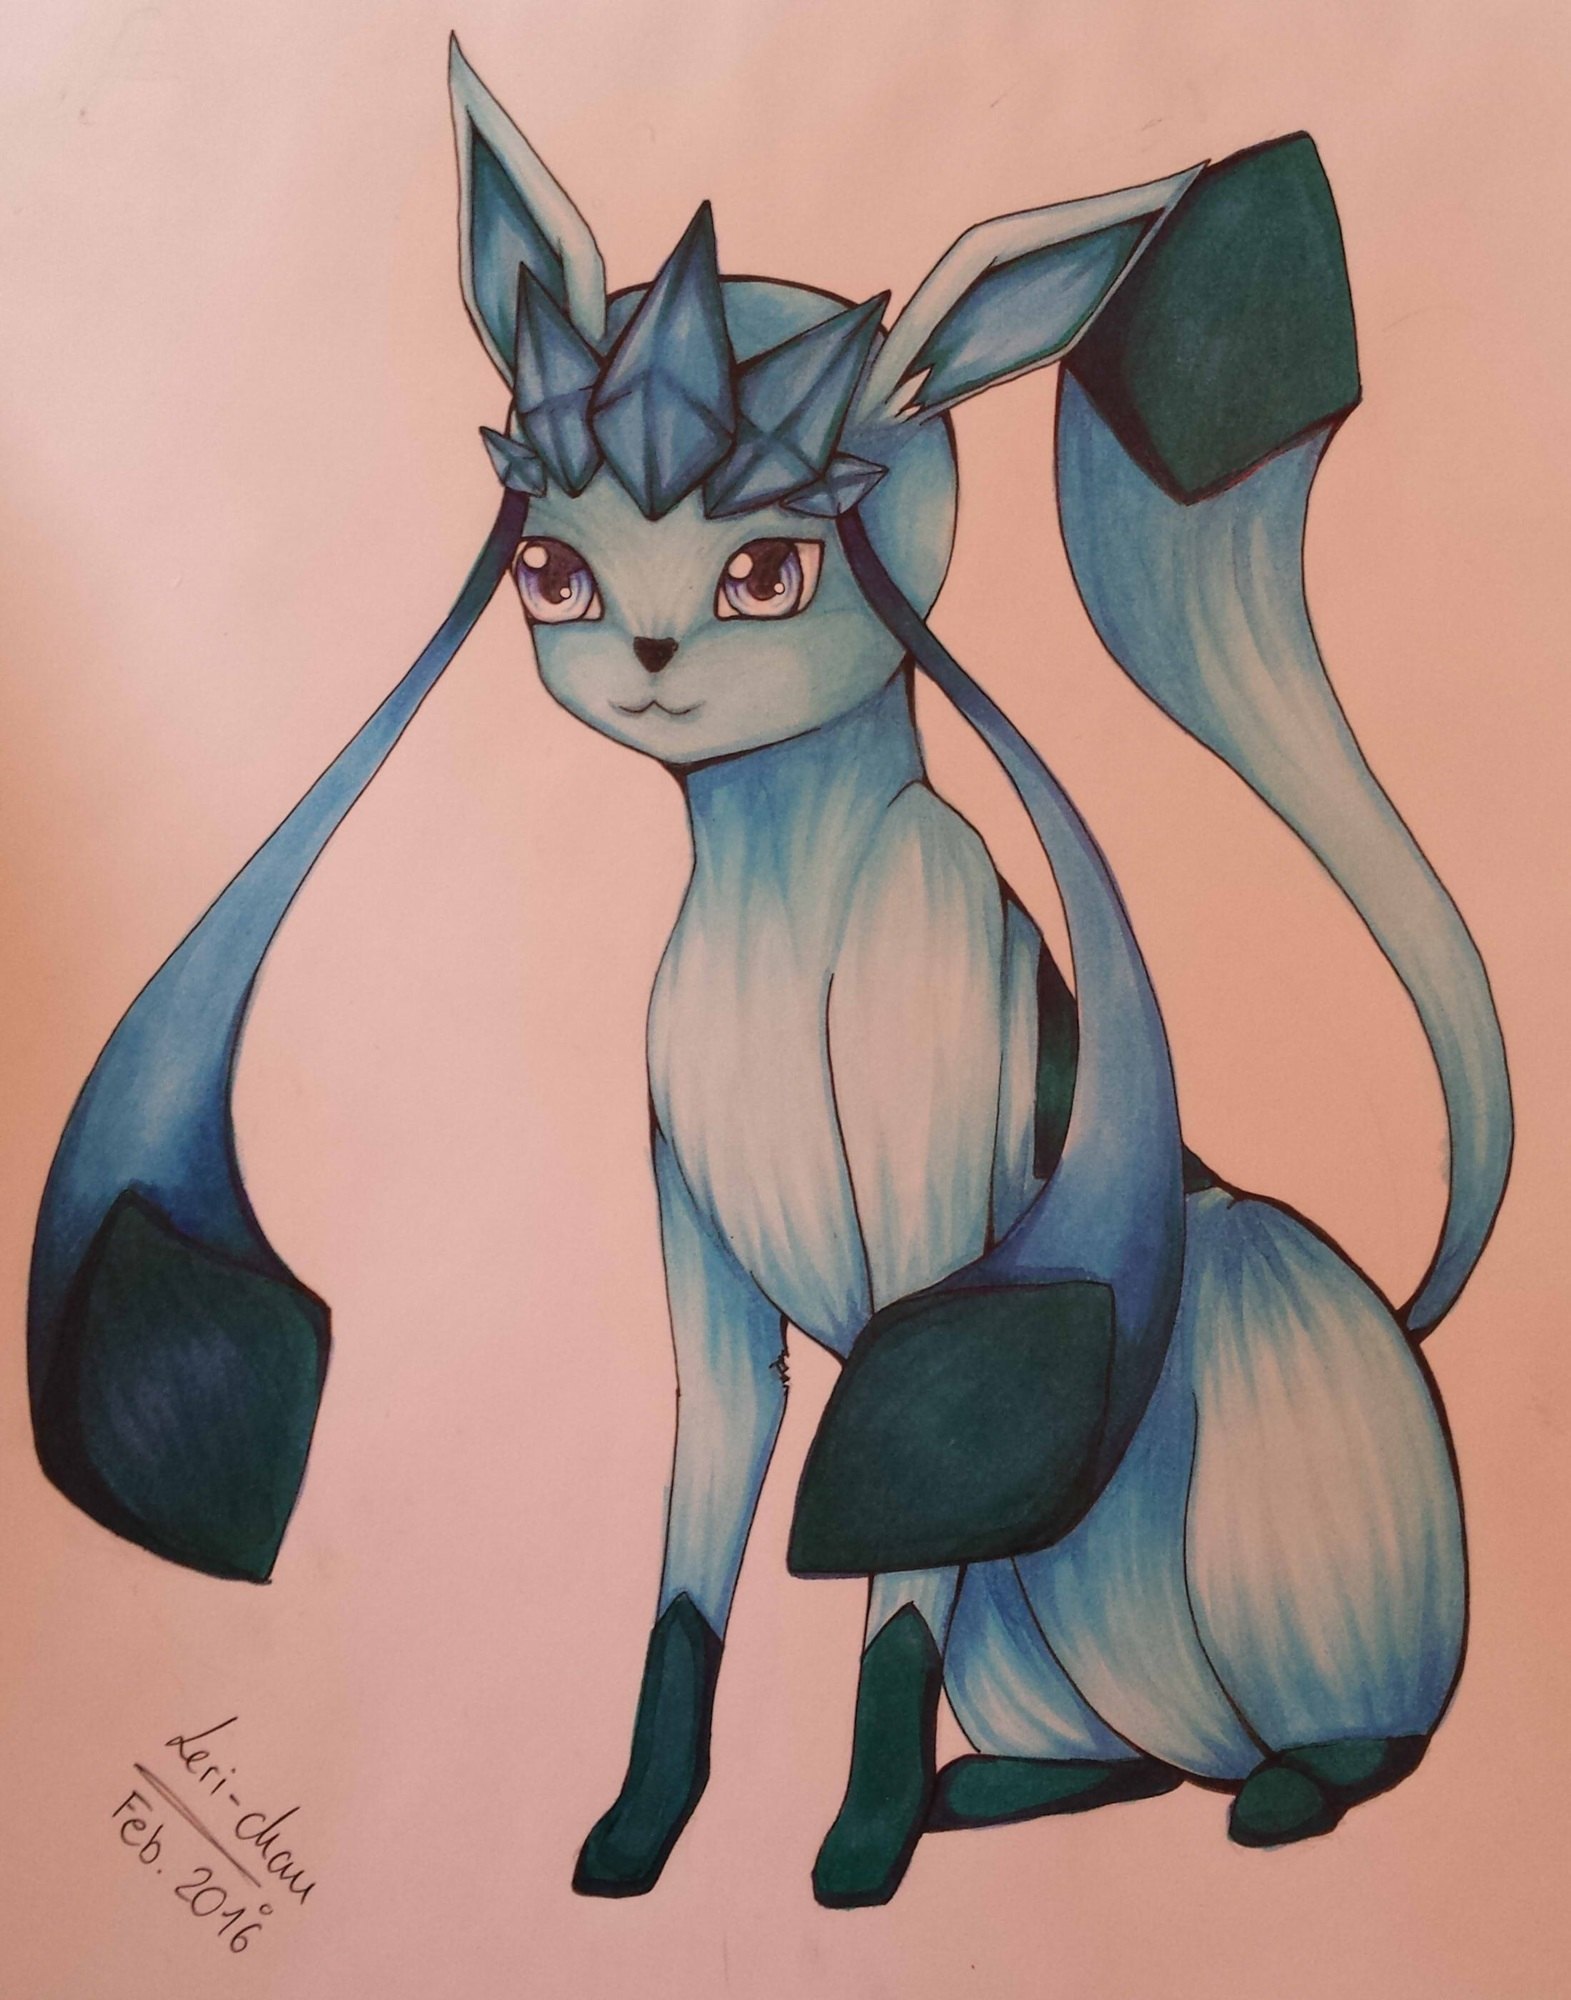 Pokémon-Zeichnung: Glaziola Copic